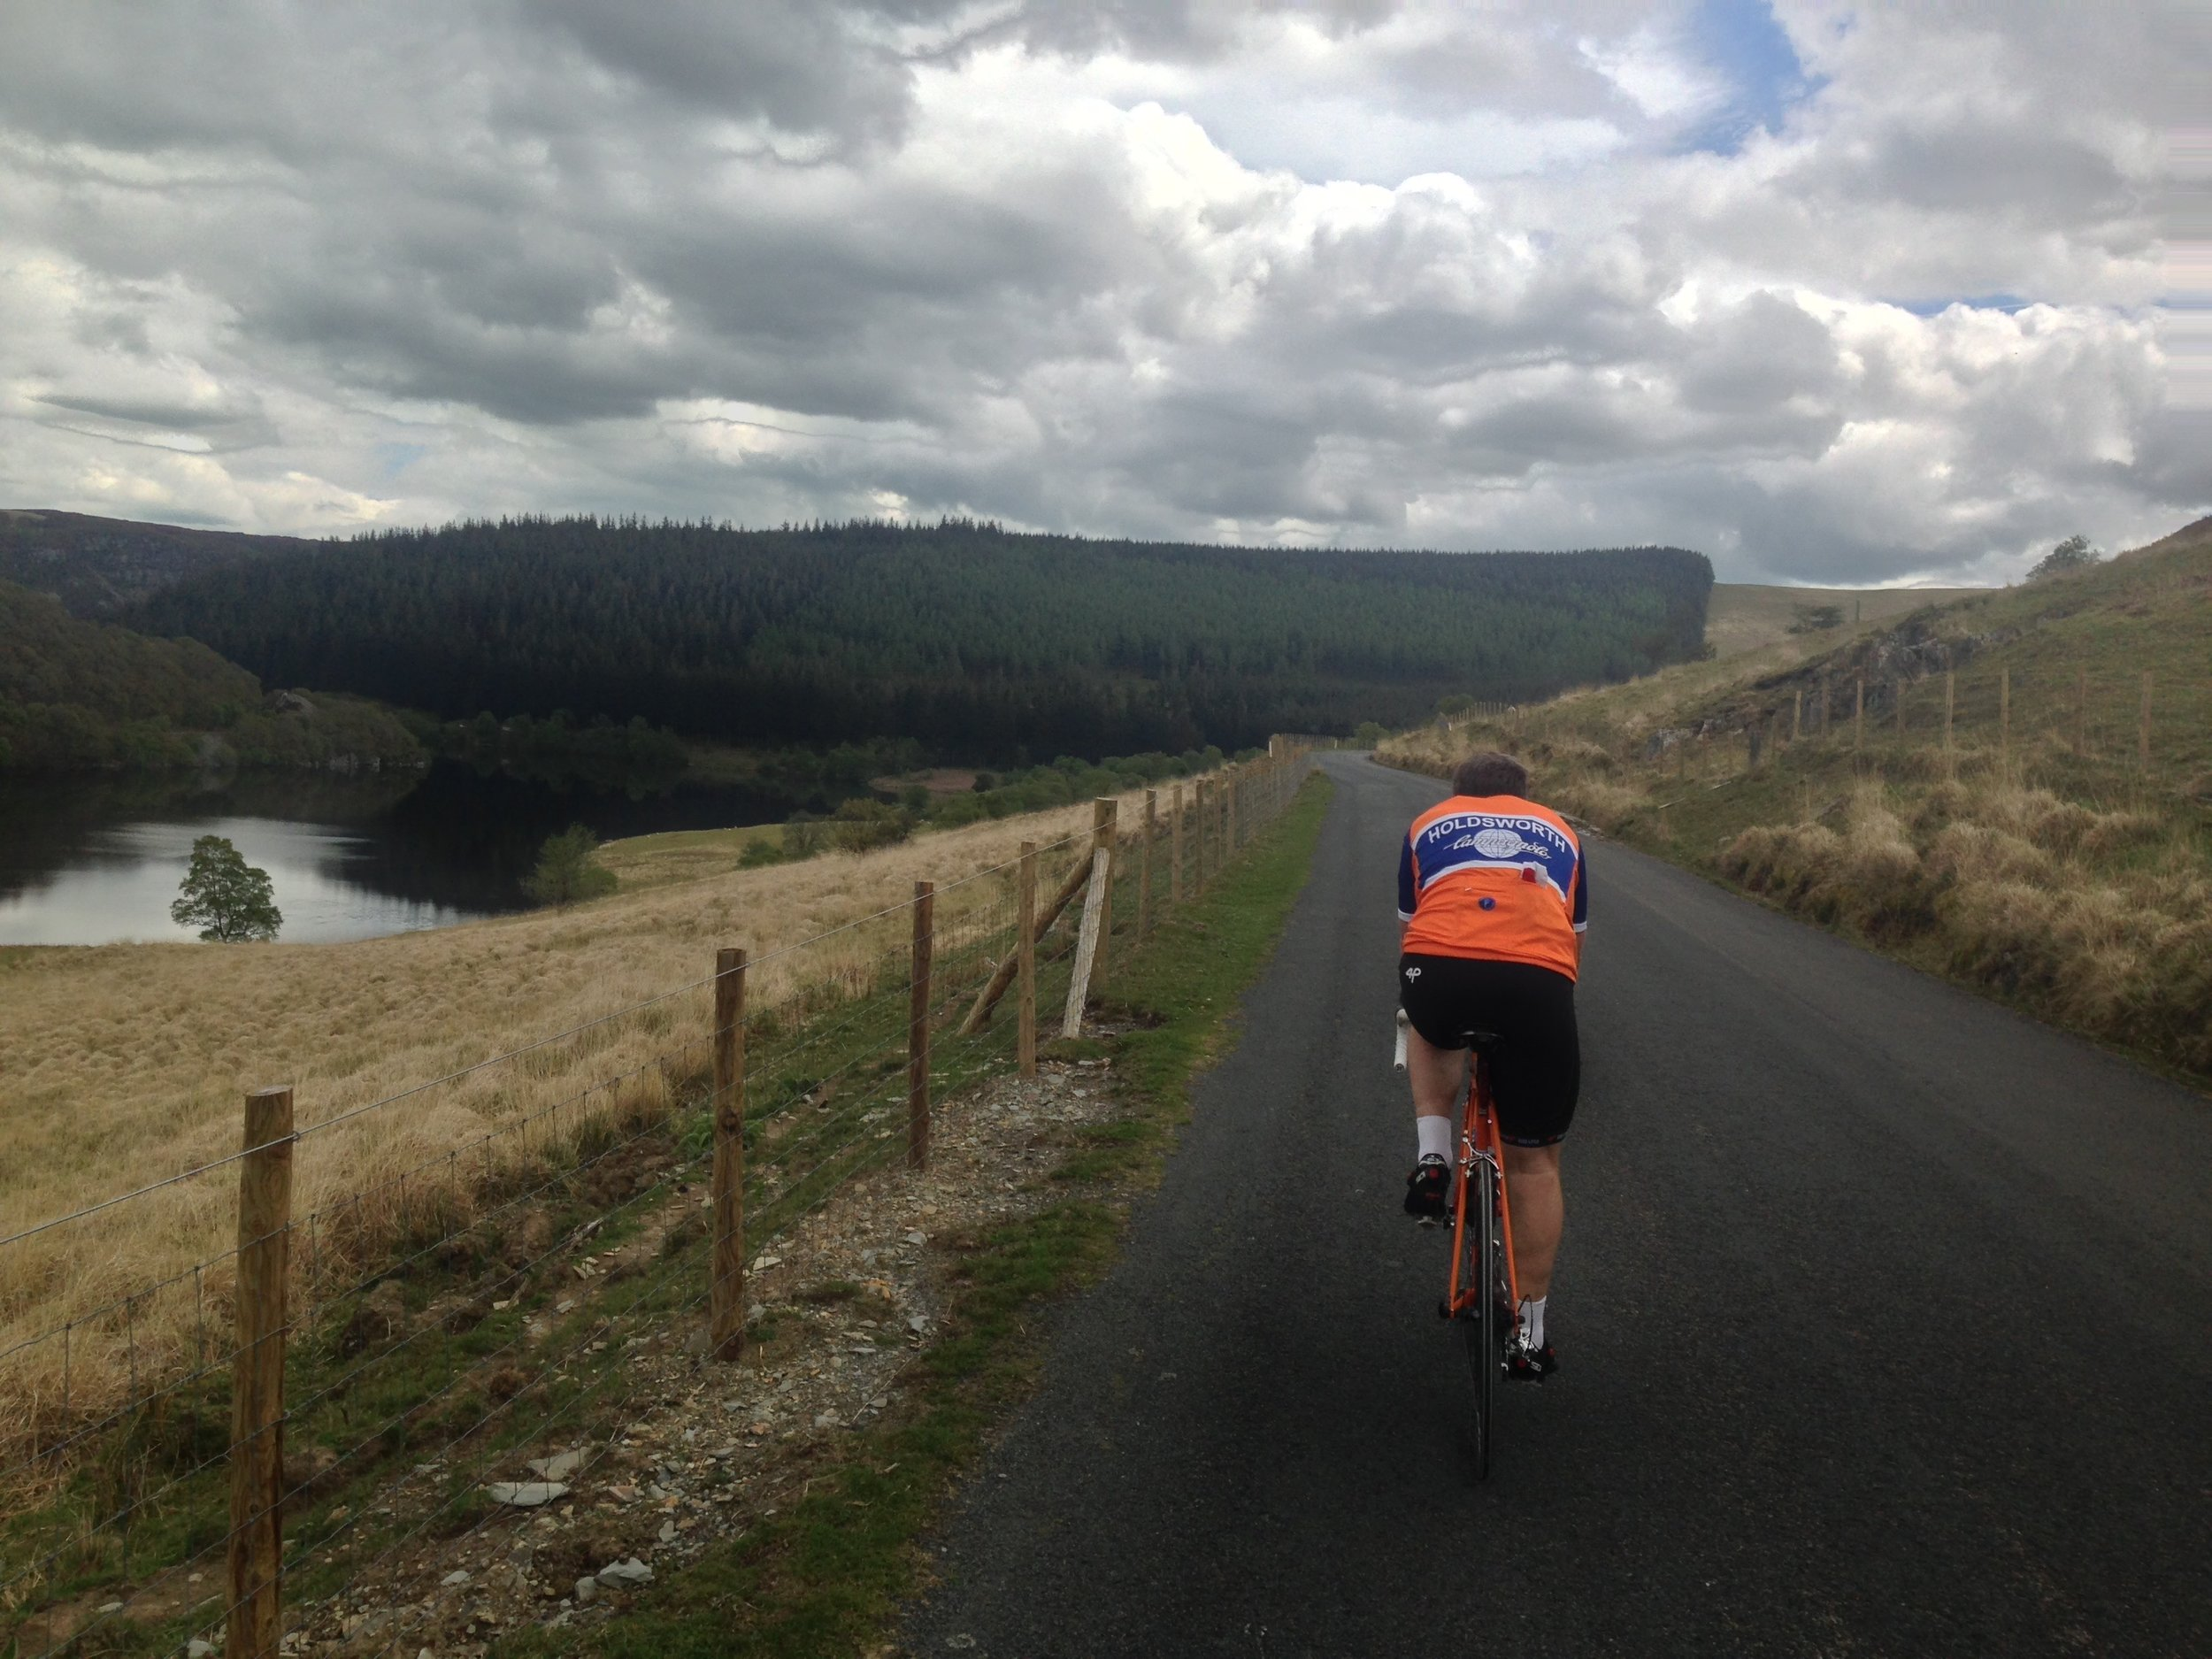 2015: Our ride in the Elan Valley.